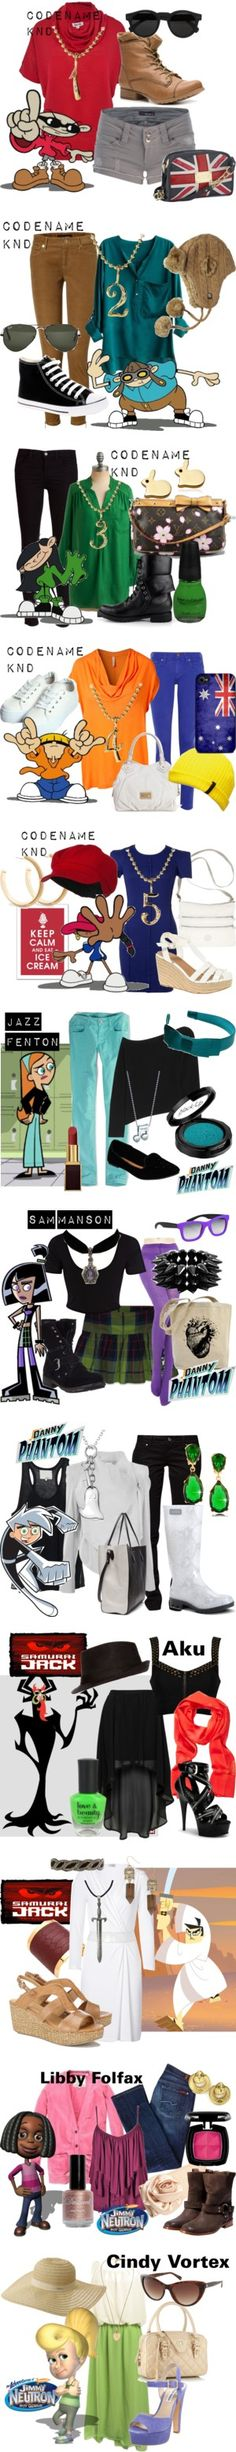 """""""90s Cartoons"""" by lilyelizajane ❤ liked on Polyvore"""